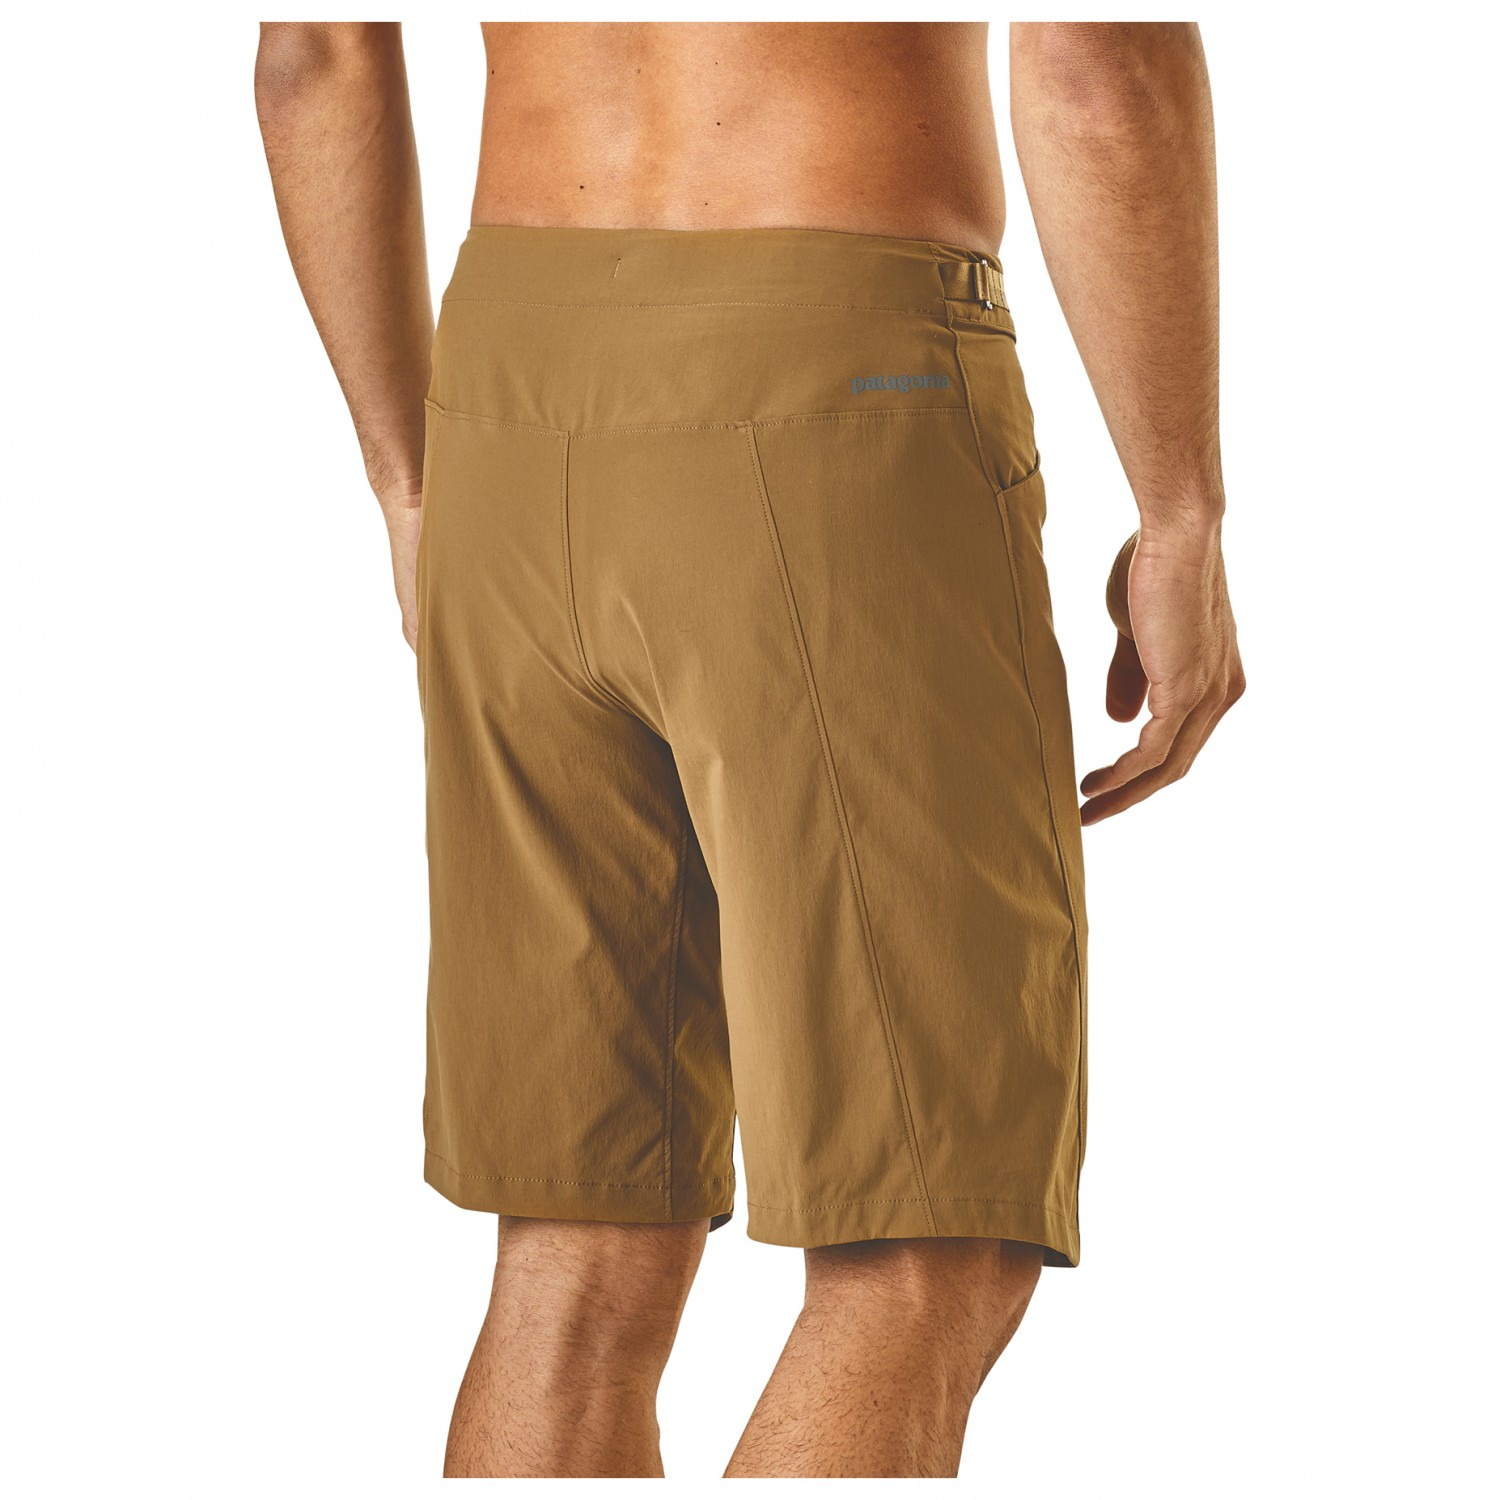 ... Patagonia - Dirt Craft Bike Shorts - Cycling trousers ... a14e2a866